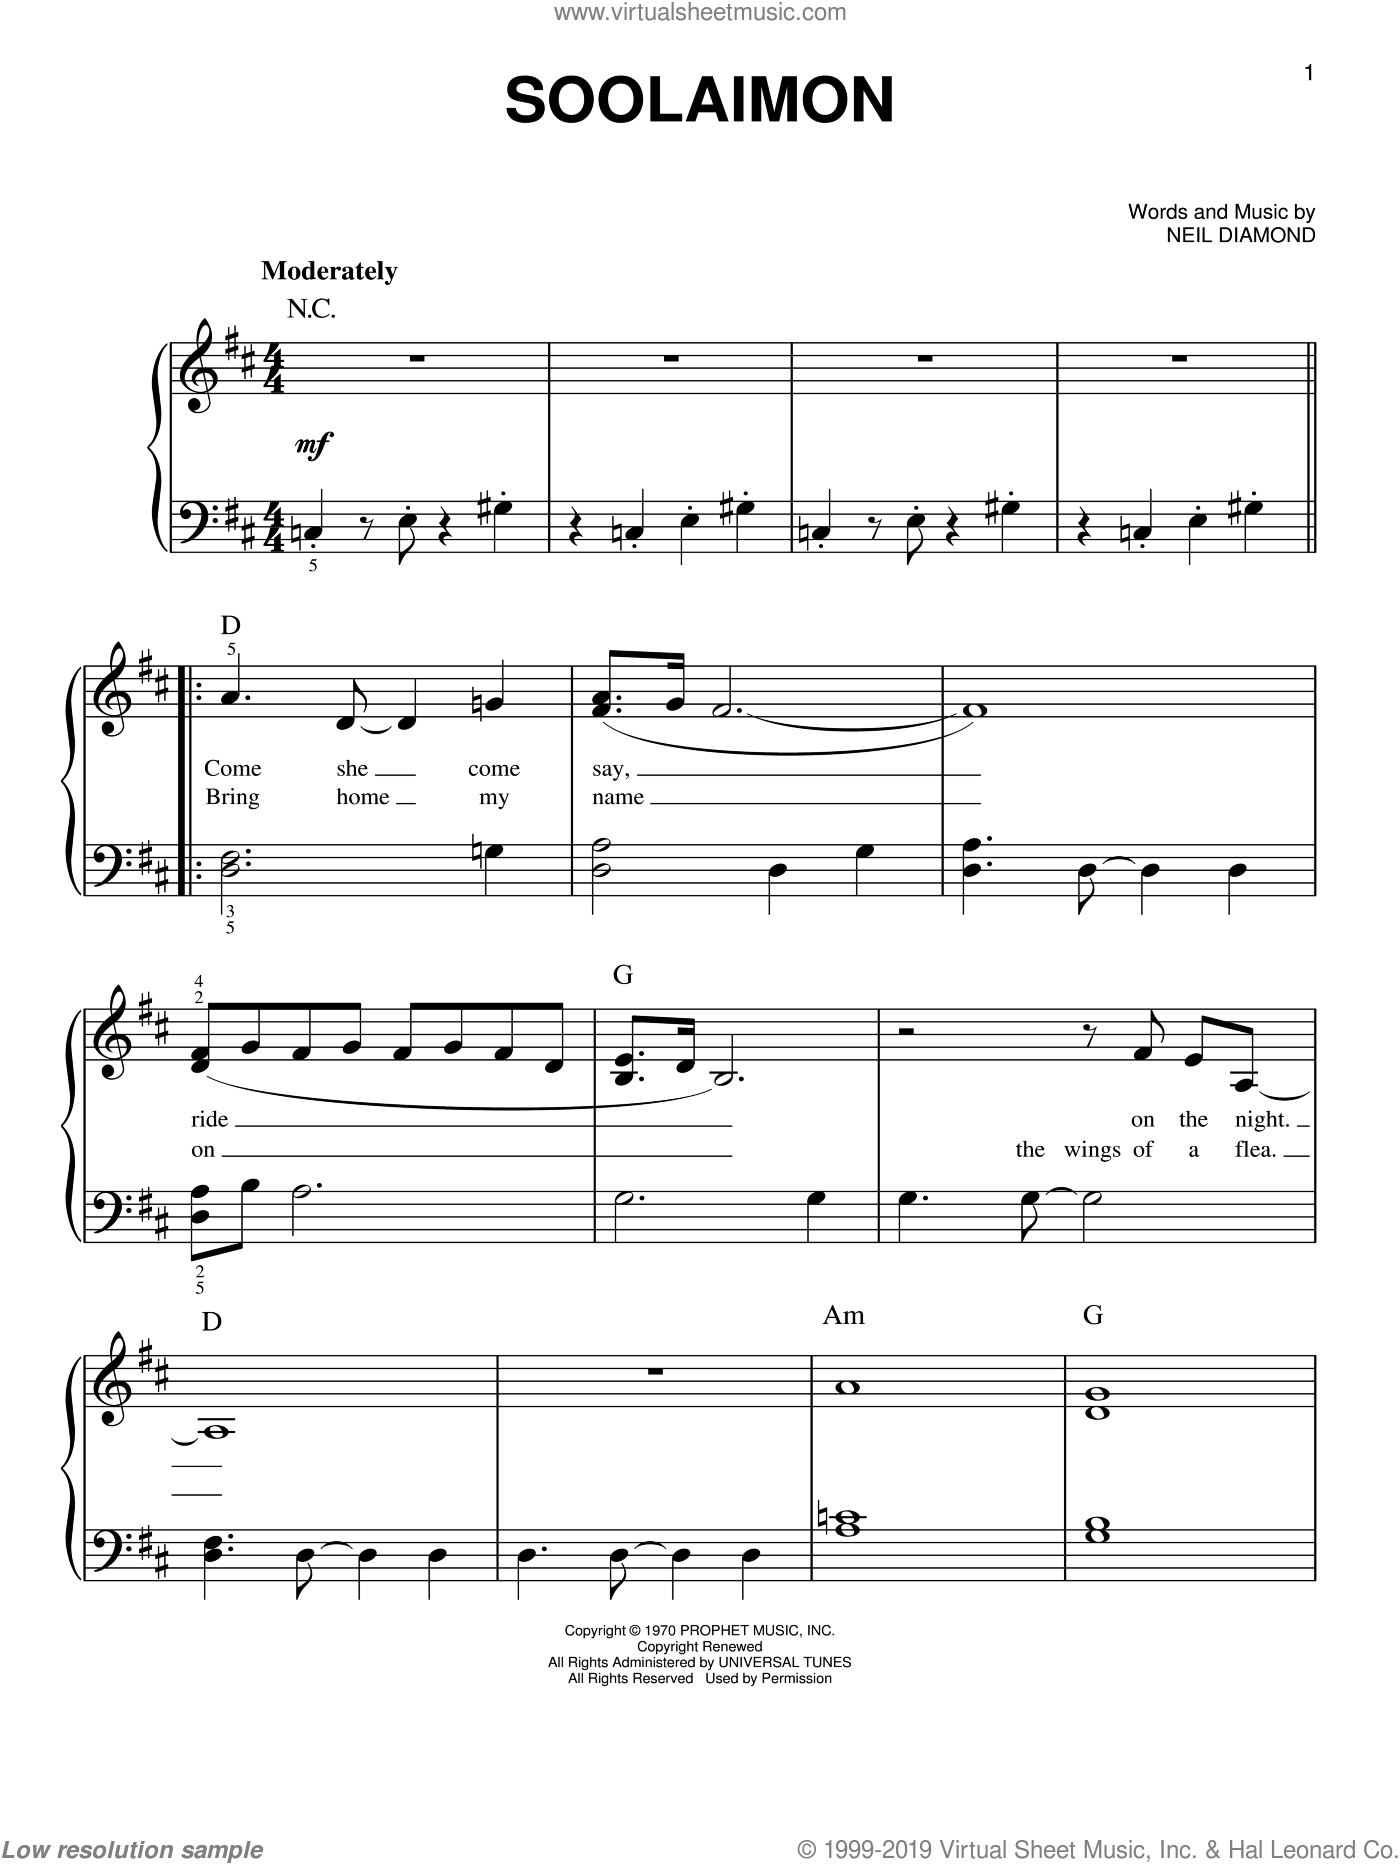 Soolaimon sheet music for piano solo by Neil Diamond, easy skill level